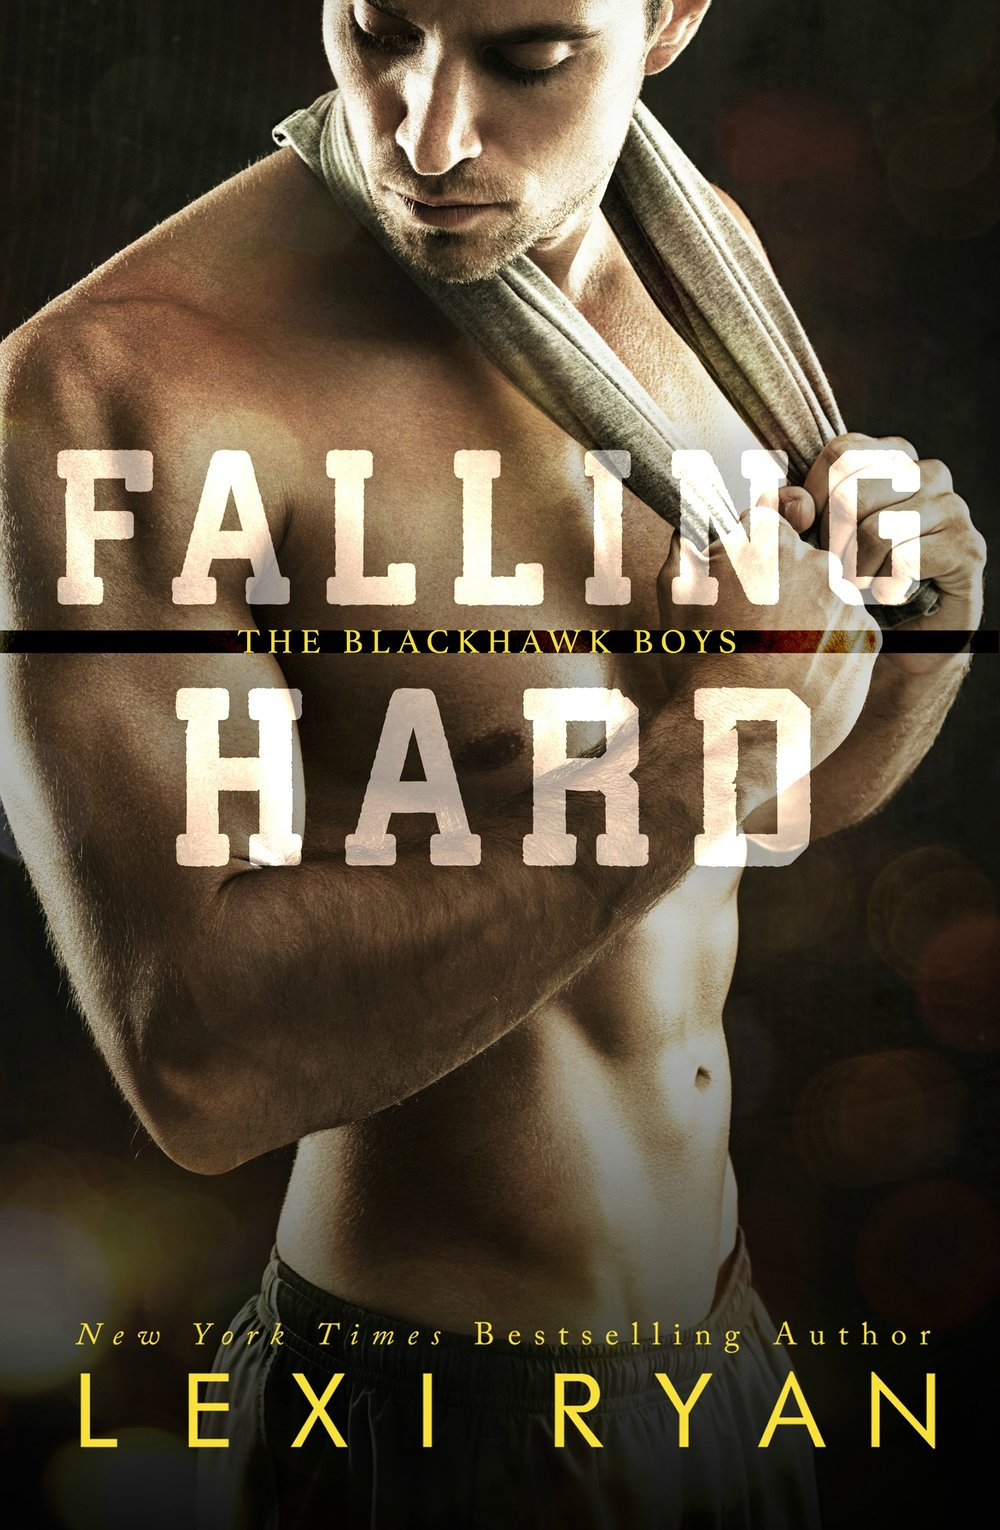 Book 4 - FALLING HARD (Keegan's story)   Amazon US   Amazon UK   Amazon CA   Amazon AU   B&N   Kobo   iBooks   Google Play